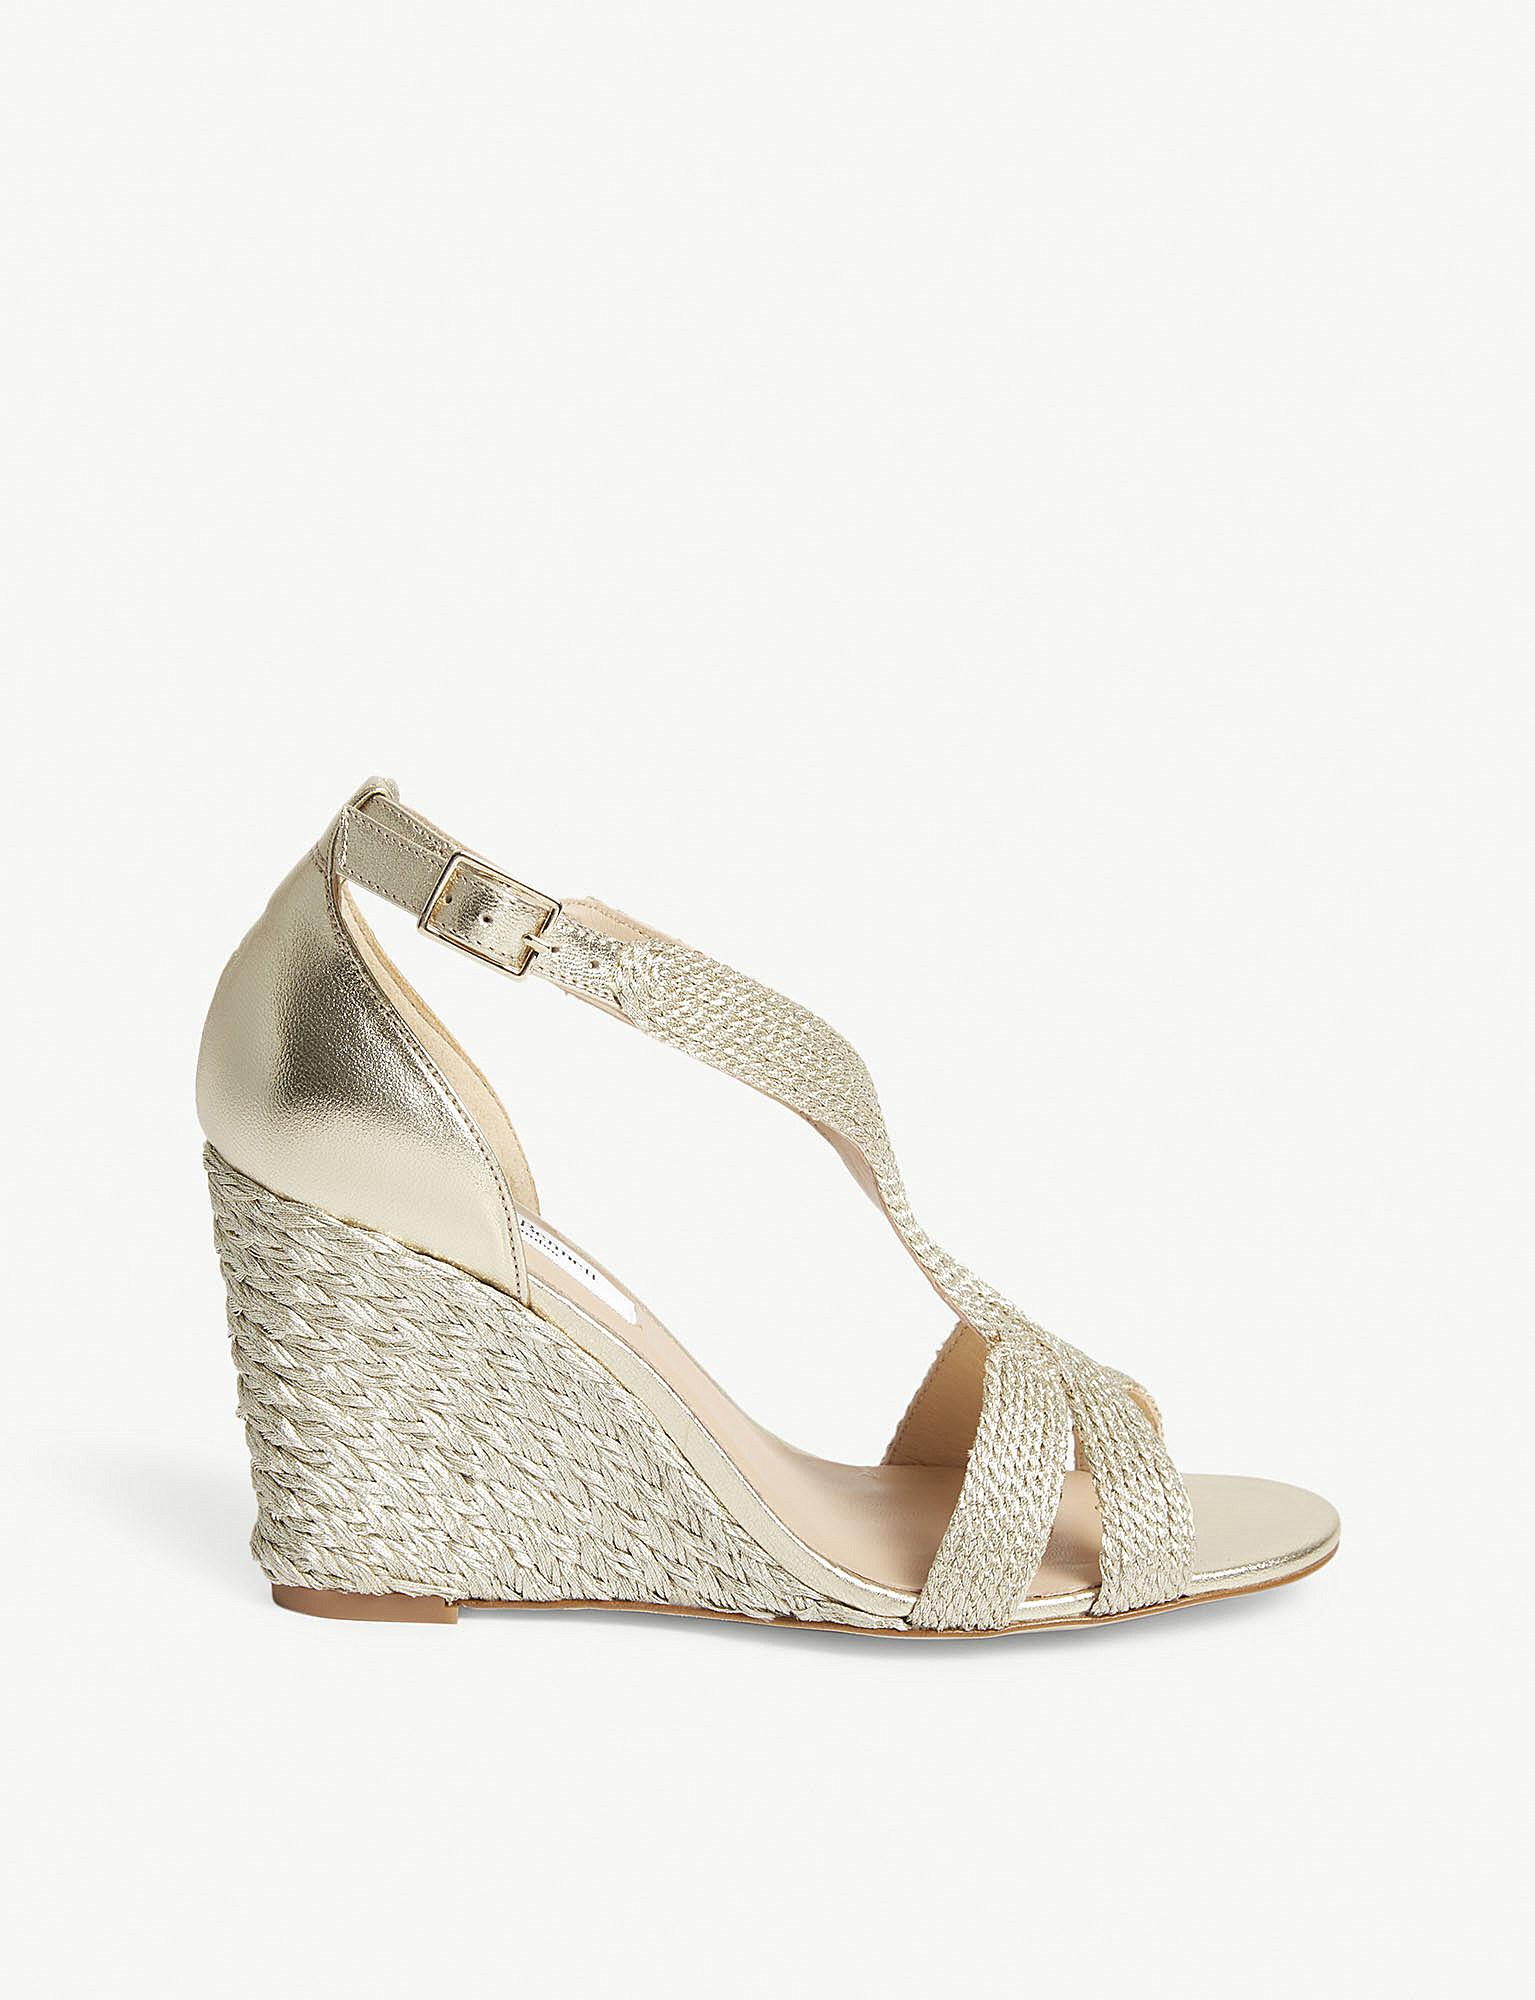 bc07b284ad Lyst - L.K.Bennett Mali Metallic Leather Heeled Sandals in Metallic